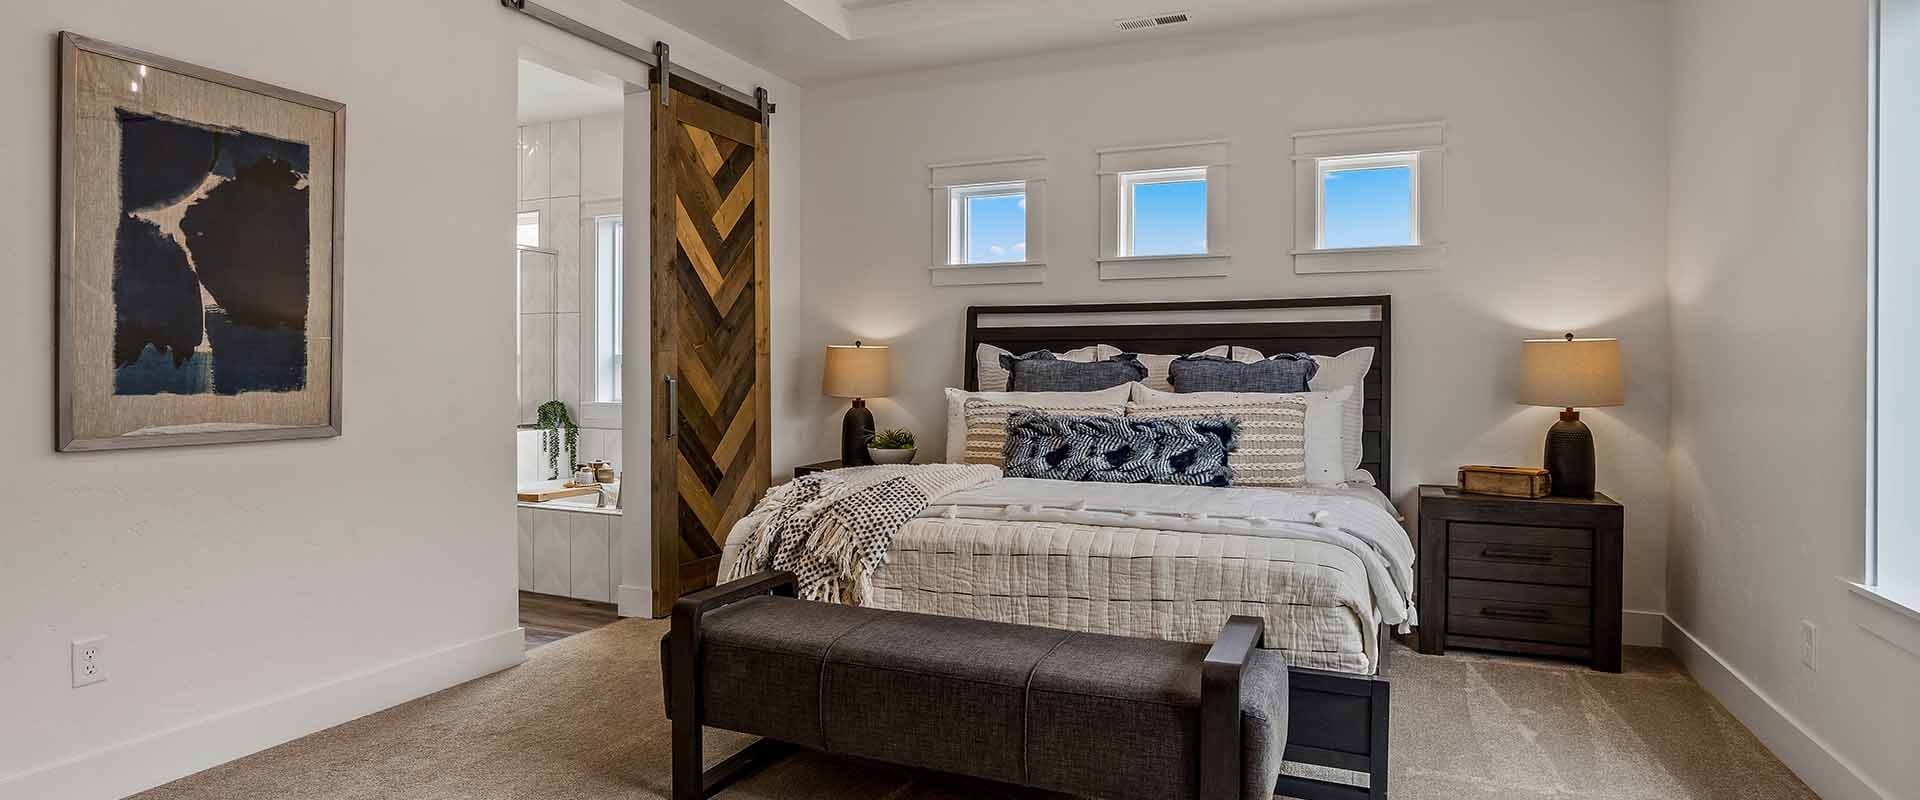 Hubble Homes Parade Home-New-Homes-Star-Idaho_0003_Parade Home - Silkwood - Master Bedroom- 582 N Heliopolis Way-52.jpg